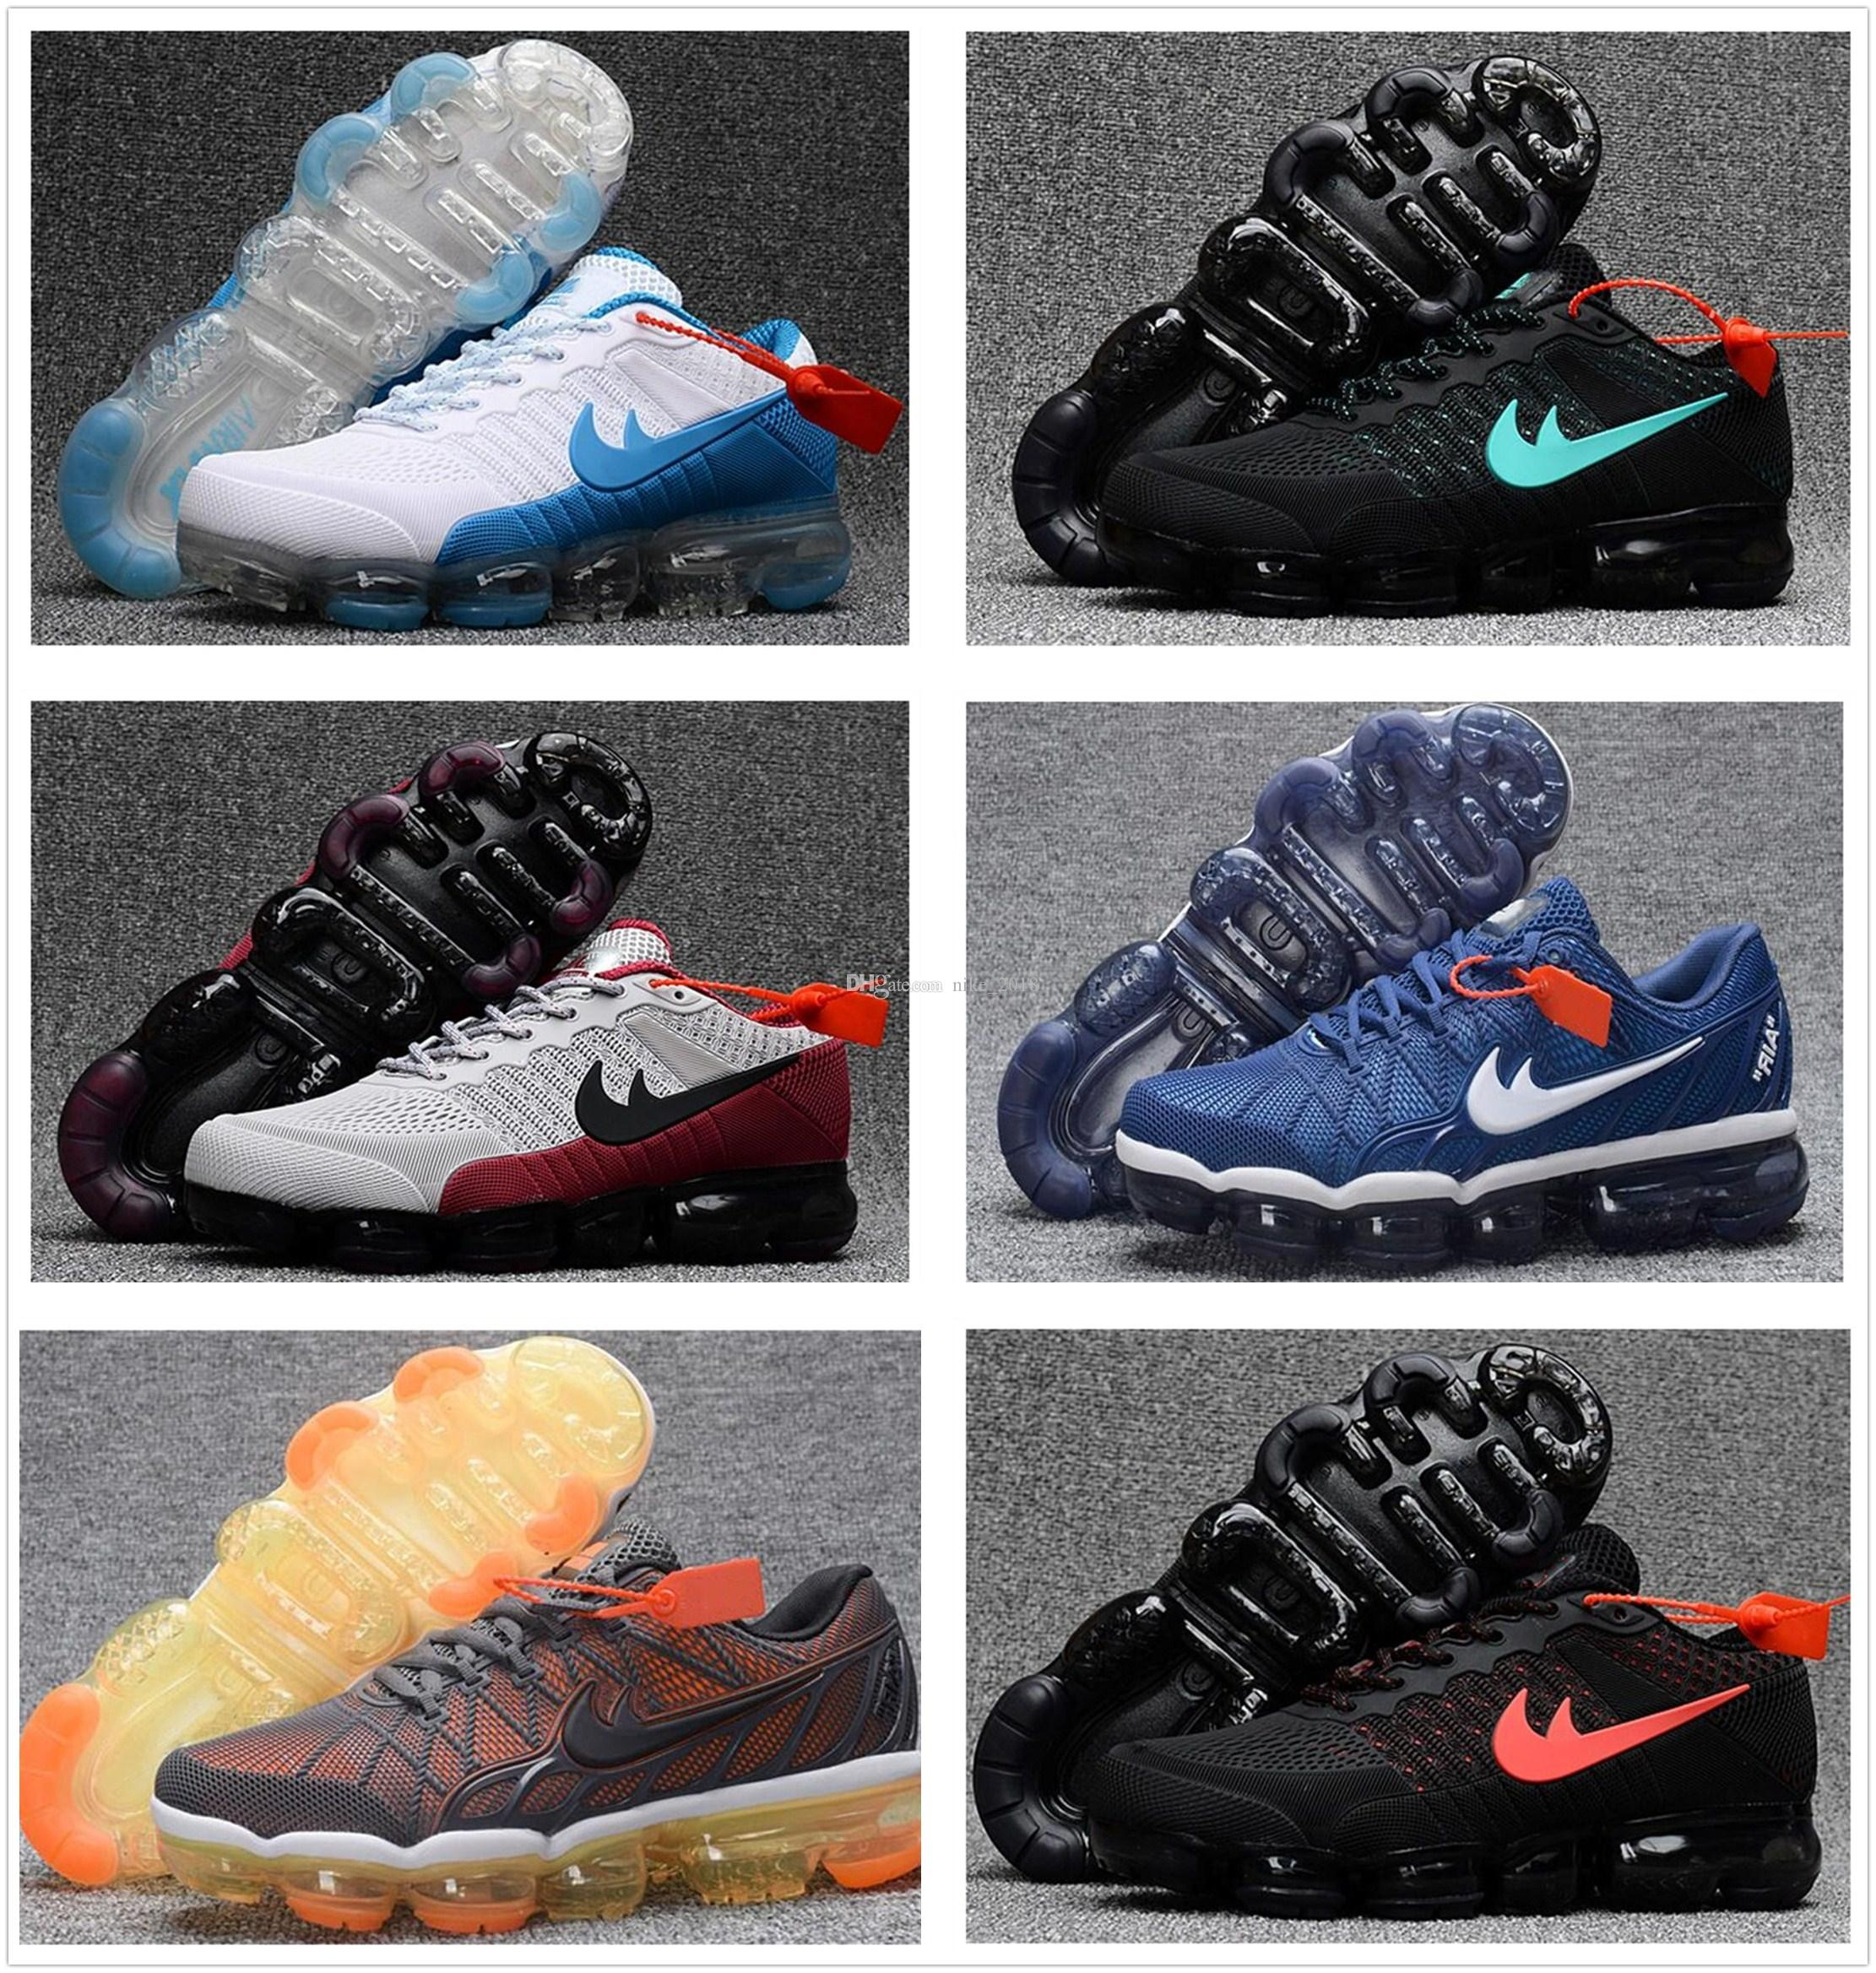 2018 New Full Palm Air Cushion Men Basketball Shoes TN Ultra Mens Sports Athletic Running Shoes Sneakers Trainers cheapest price cheap price sale new free shipping explore tnedvqT